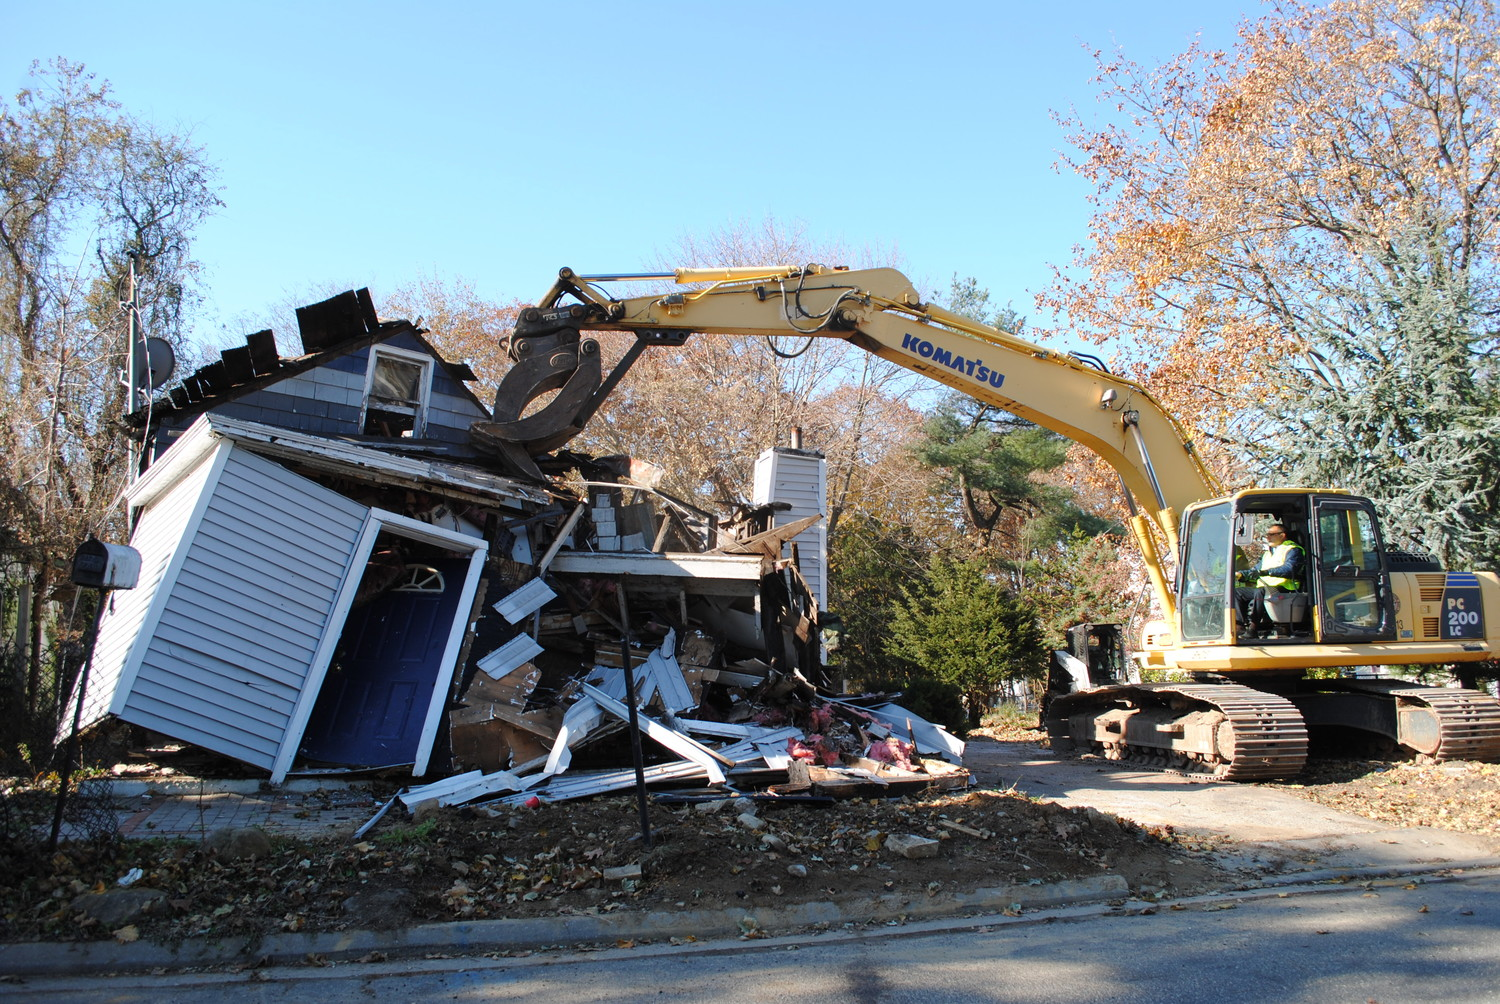 Supervisor Joseph Saladino spent nearly 45 minutes in a backhoe, demolishing a home on Thirteenth Street.